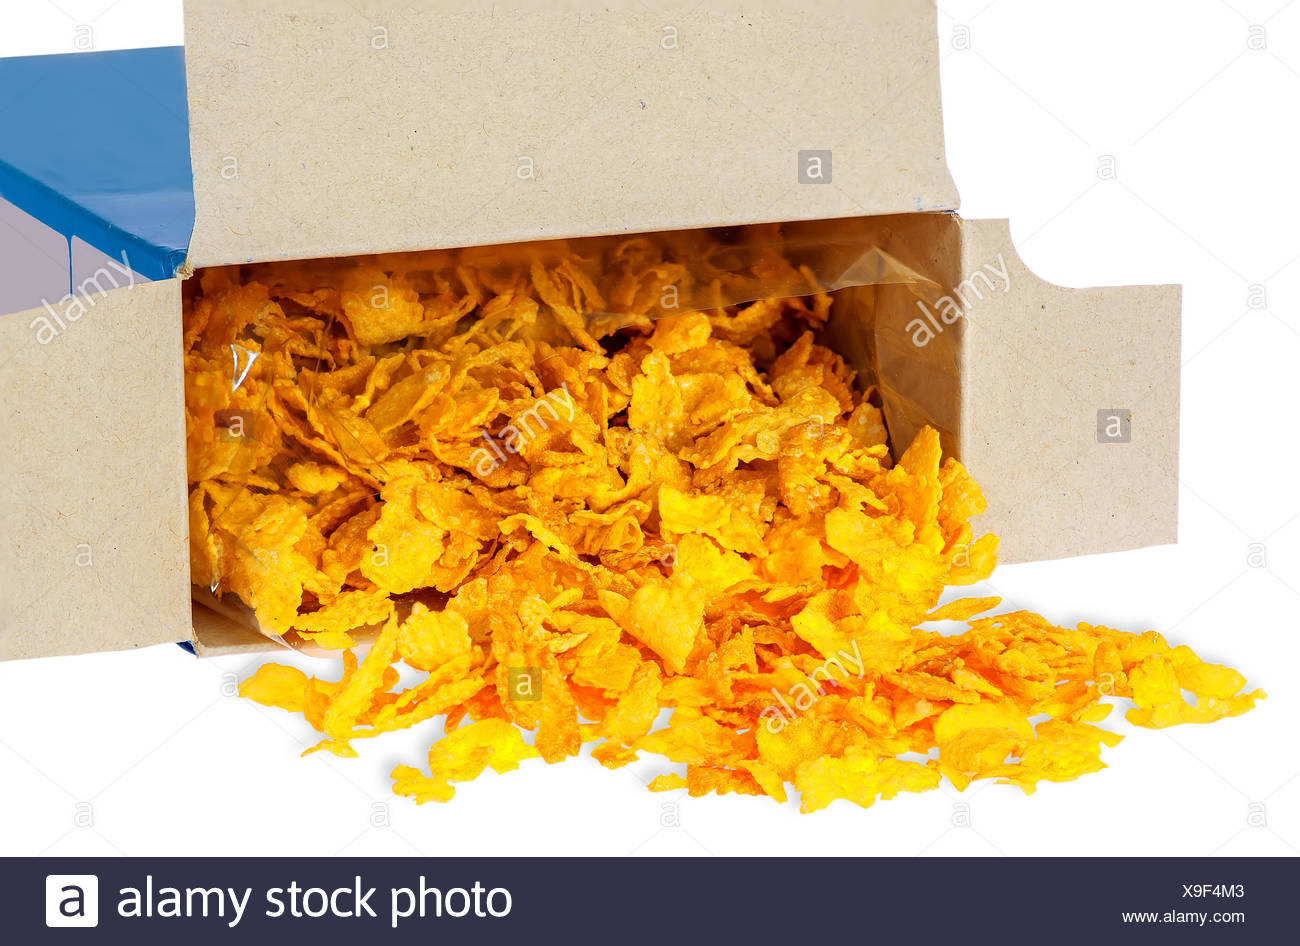 Corn flakes spill out of cardboard box - Stock Image